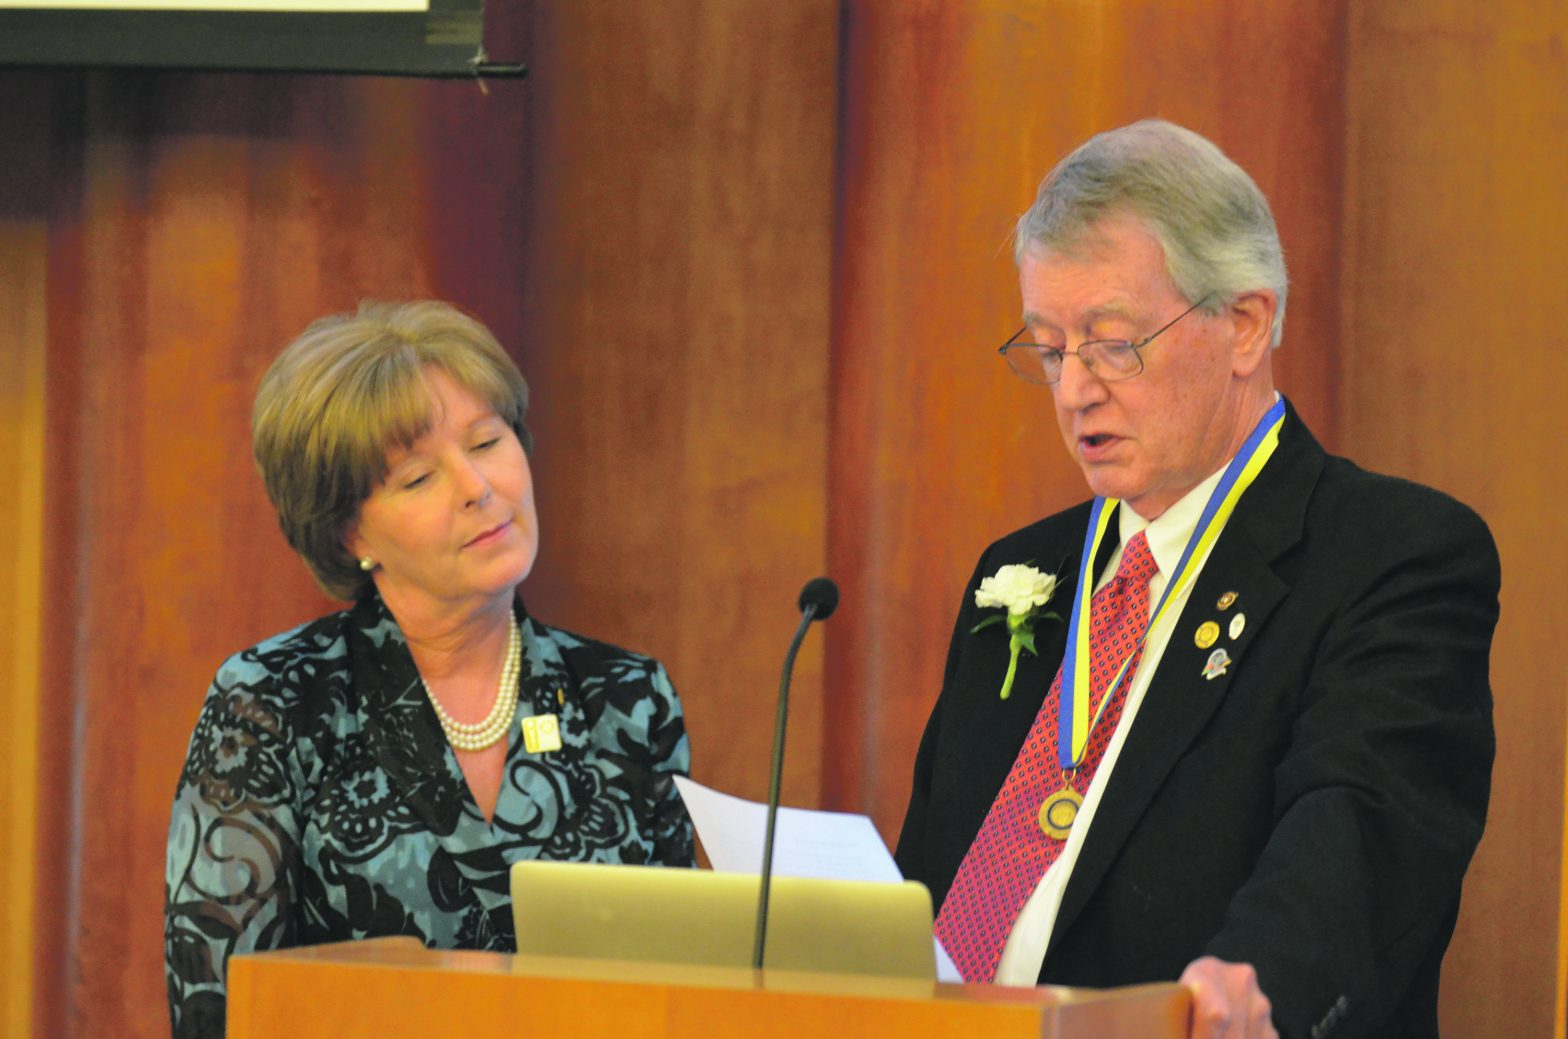 Rotary Pick Rotarian Of The Year  And Honors The Late Tom Hall